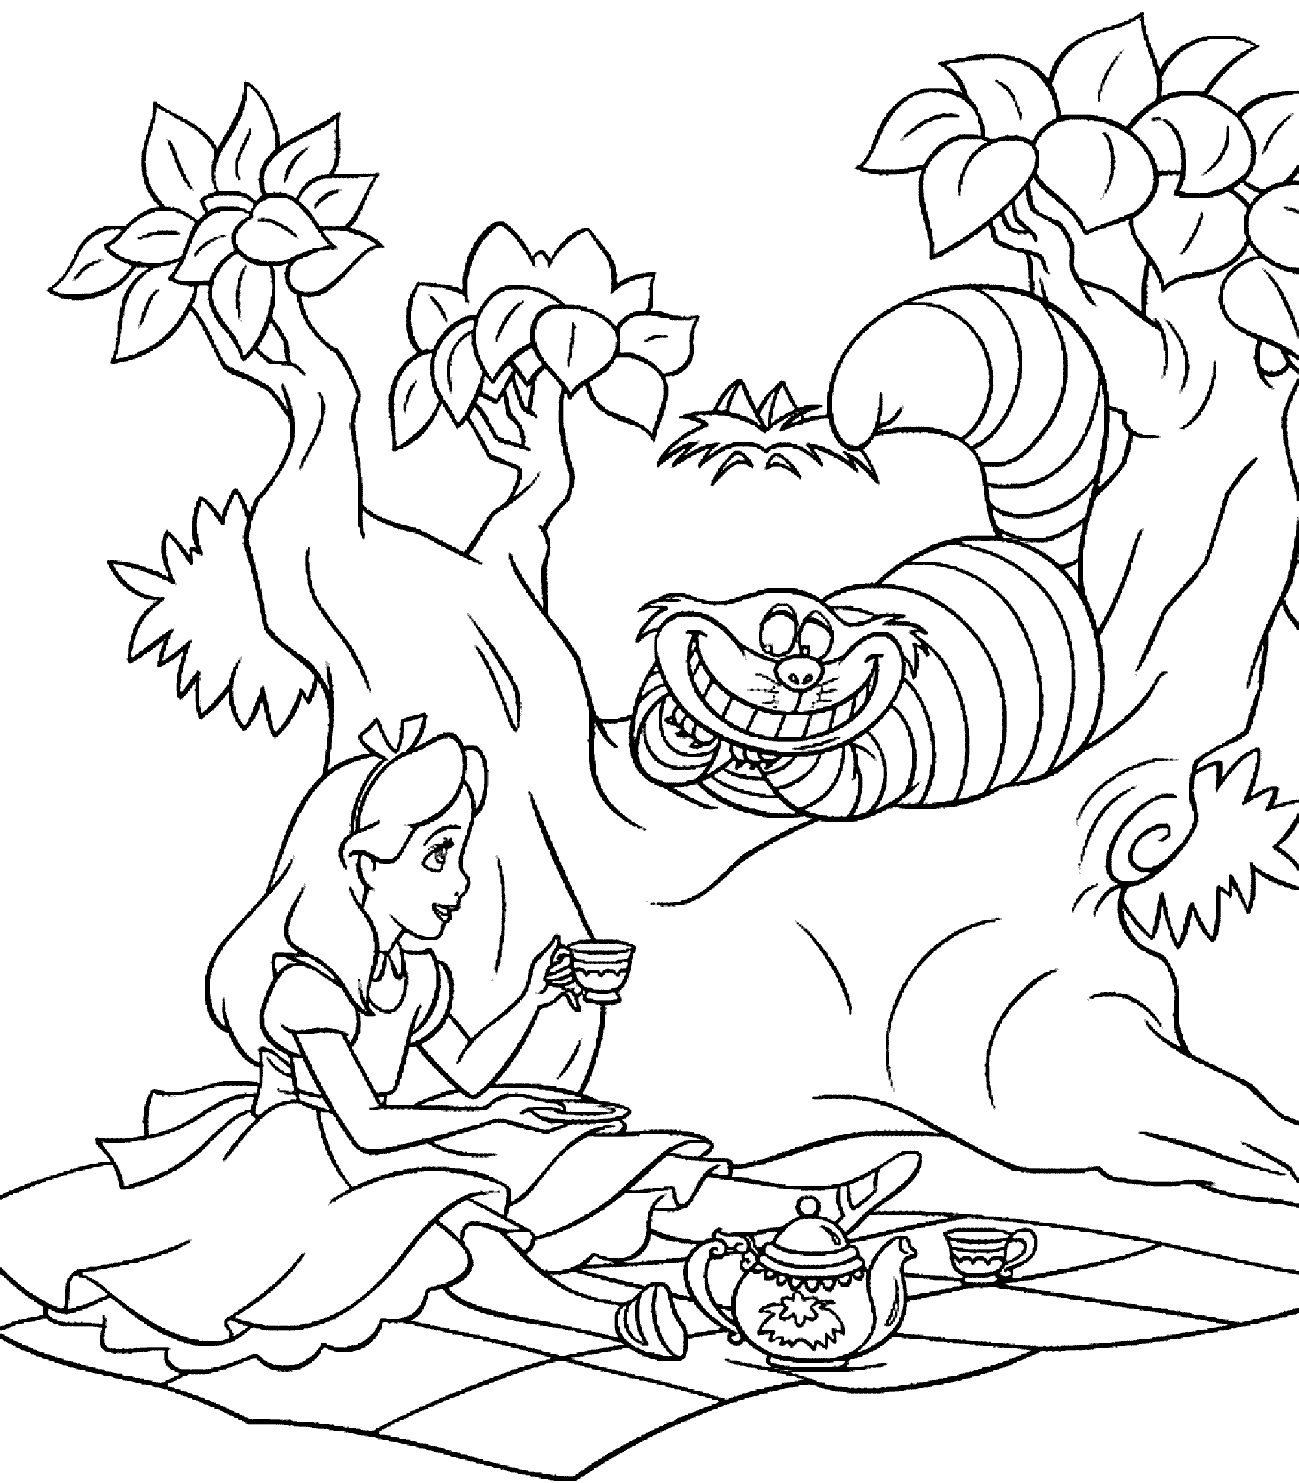 1299x1483 Printable Adult Coloring Pages Alice In Wonderland Cat Free